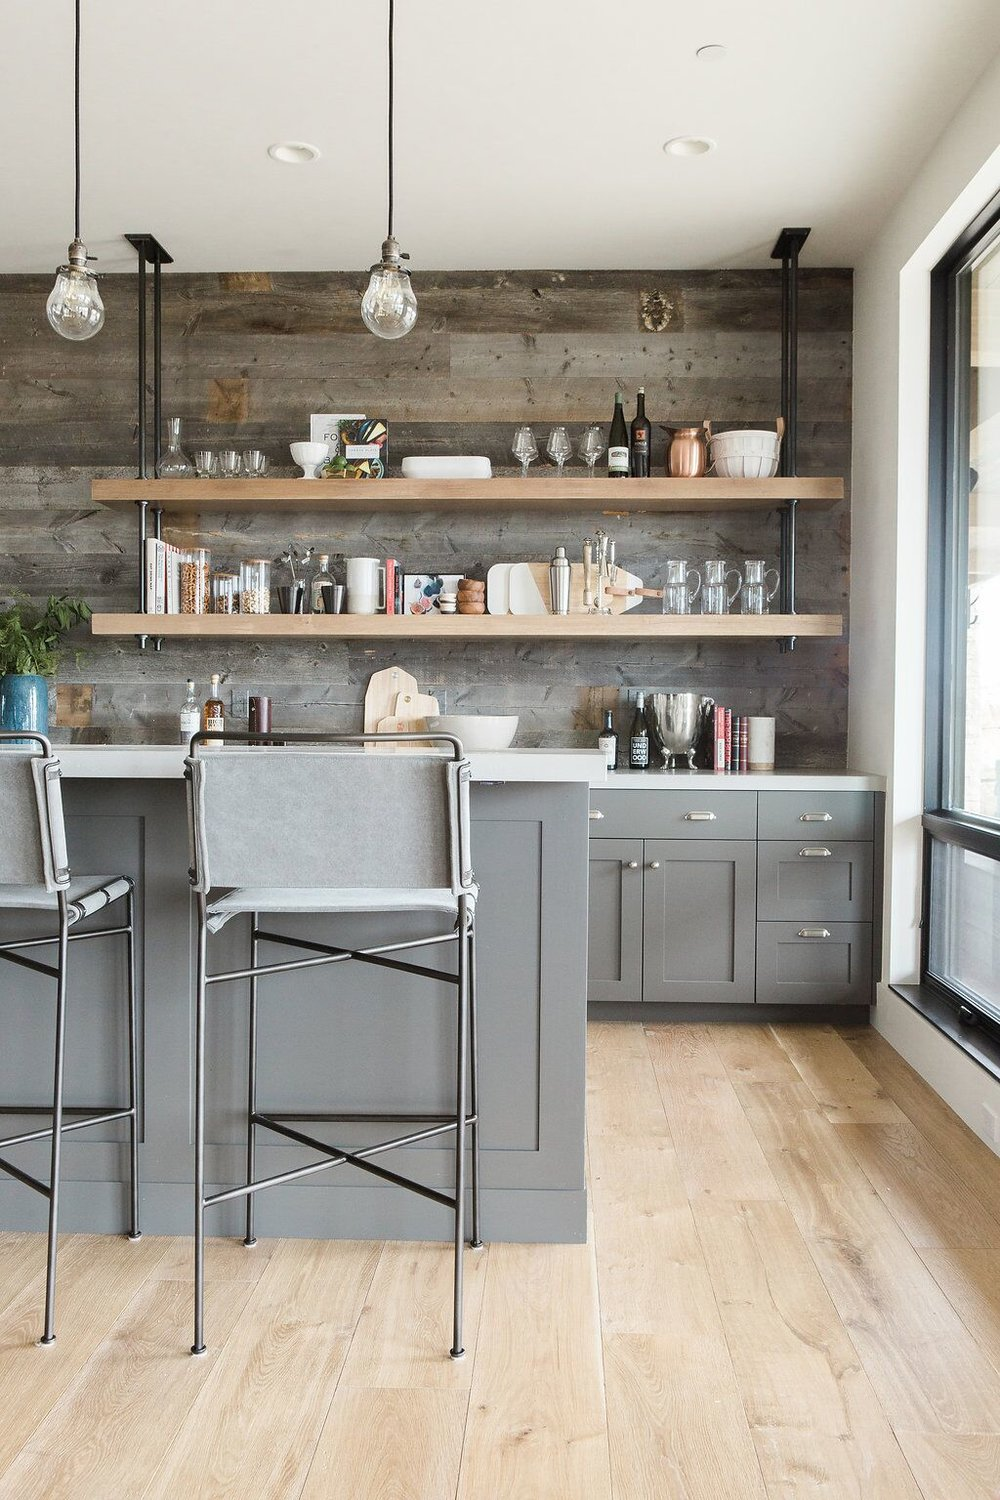 Tall stools underneath grey bar